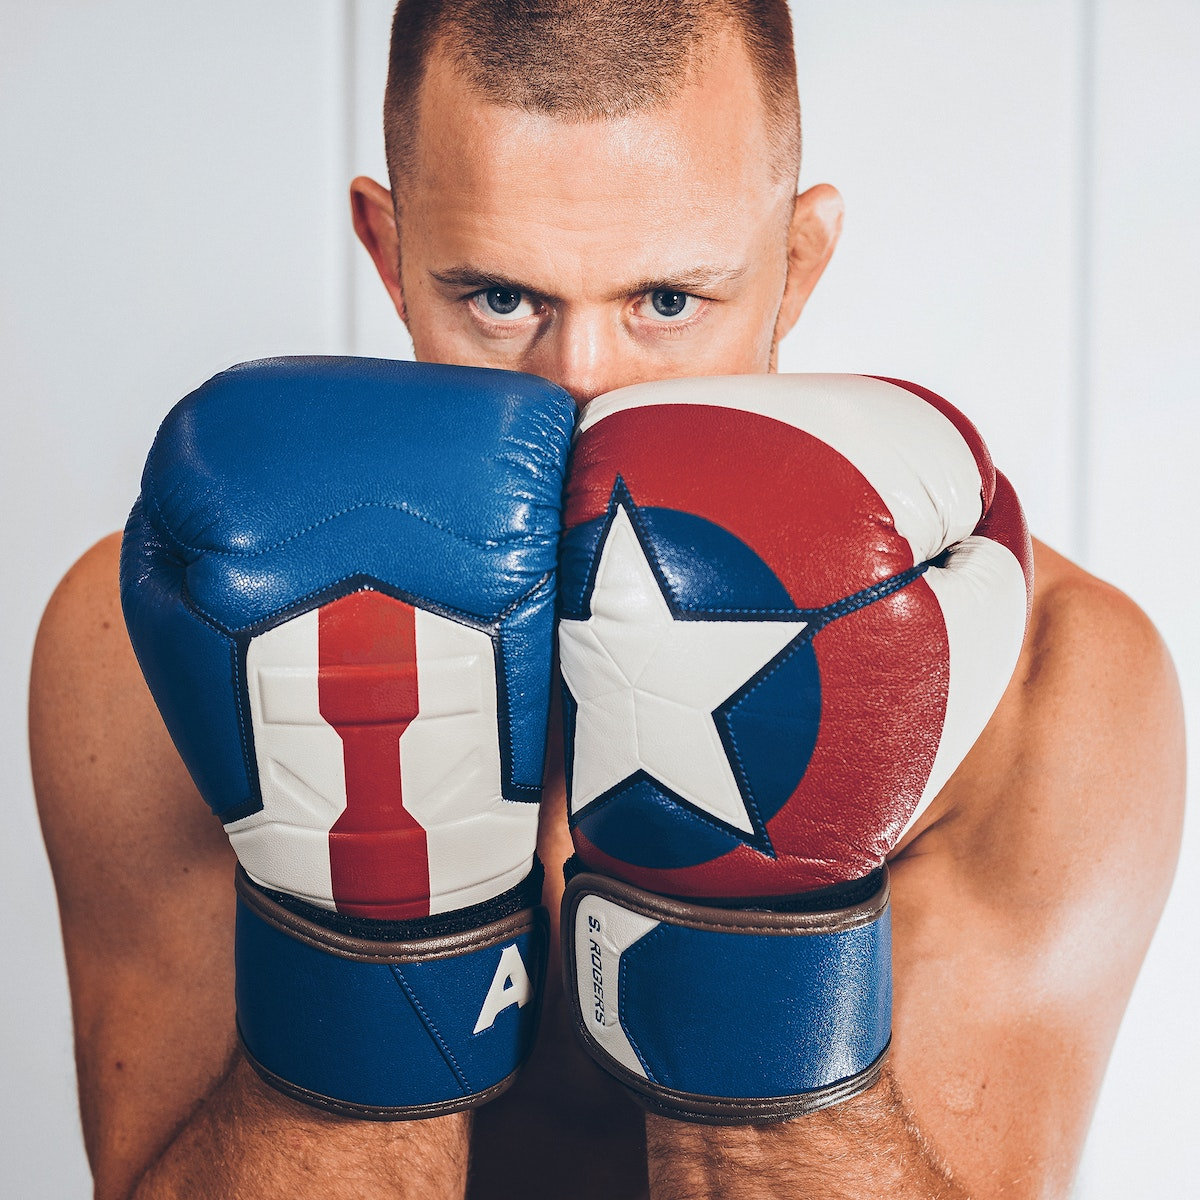 e01ab0f6d Limited Edition Marvel Hero Elite Series. Previous. Captain America Boxing  Gloves. click images to see gallery